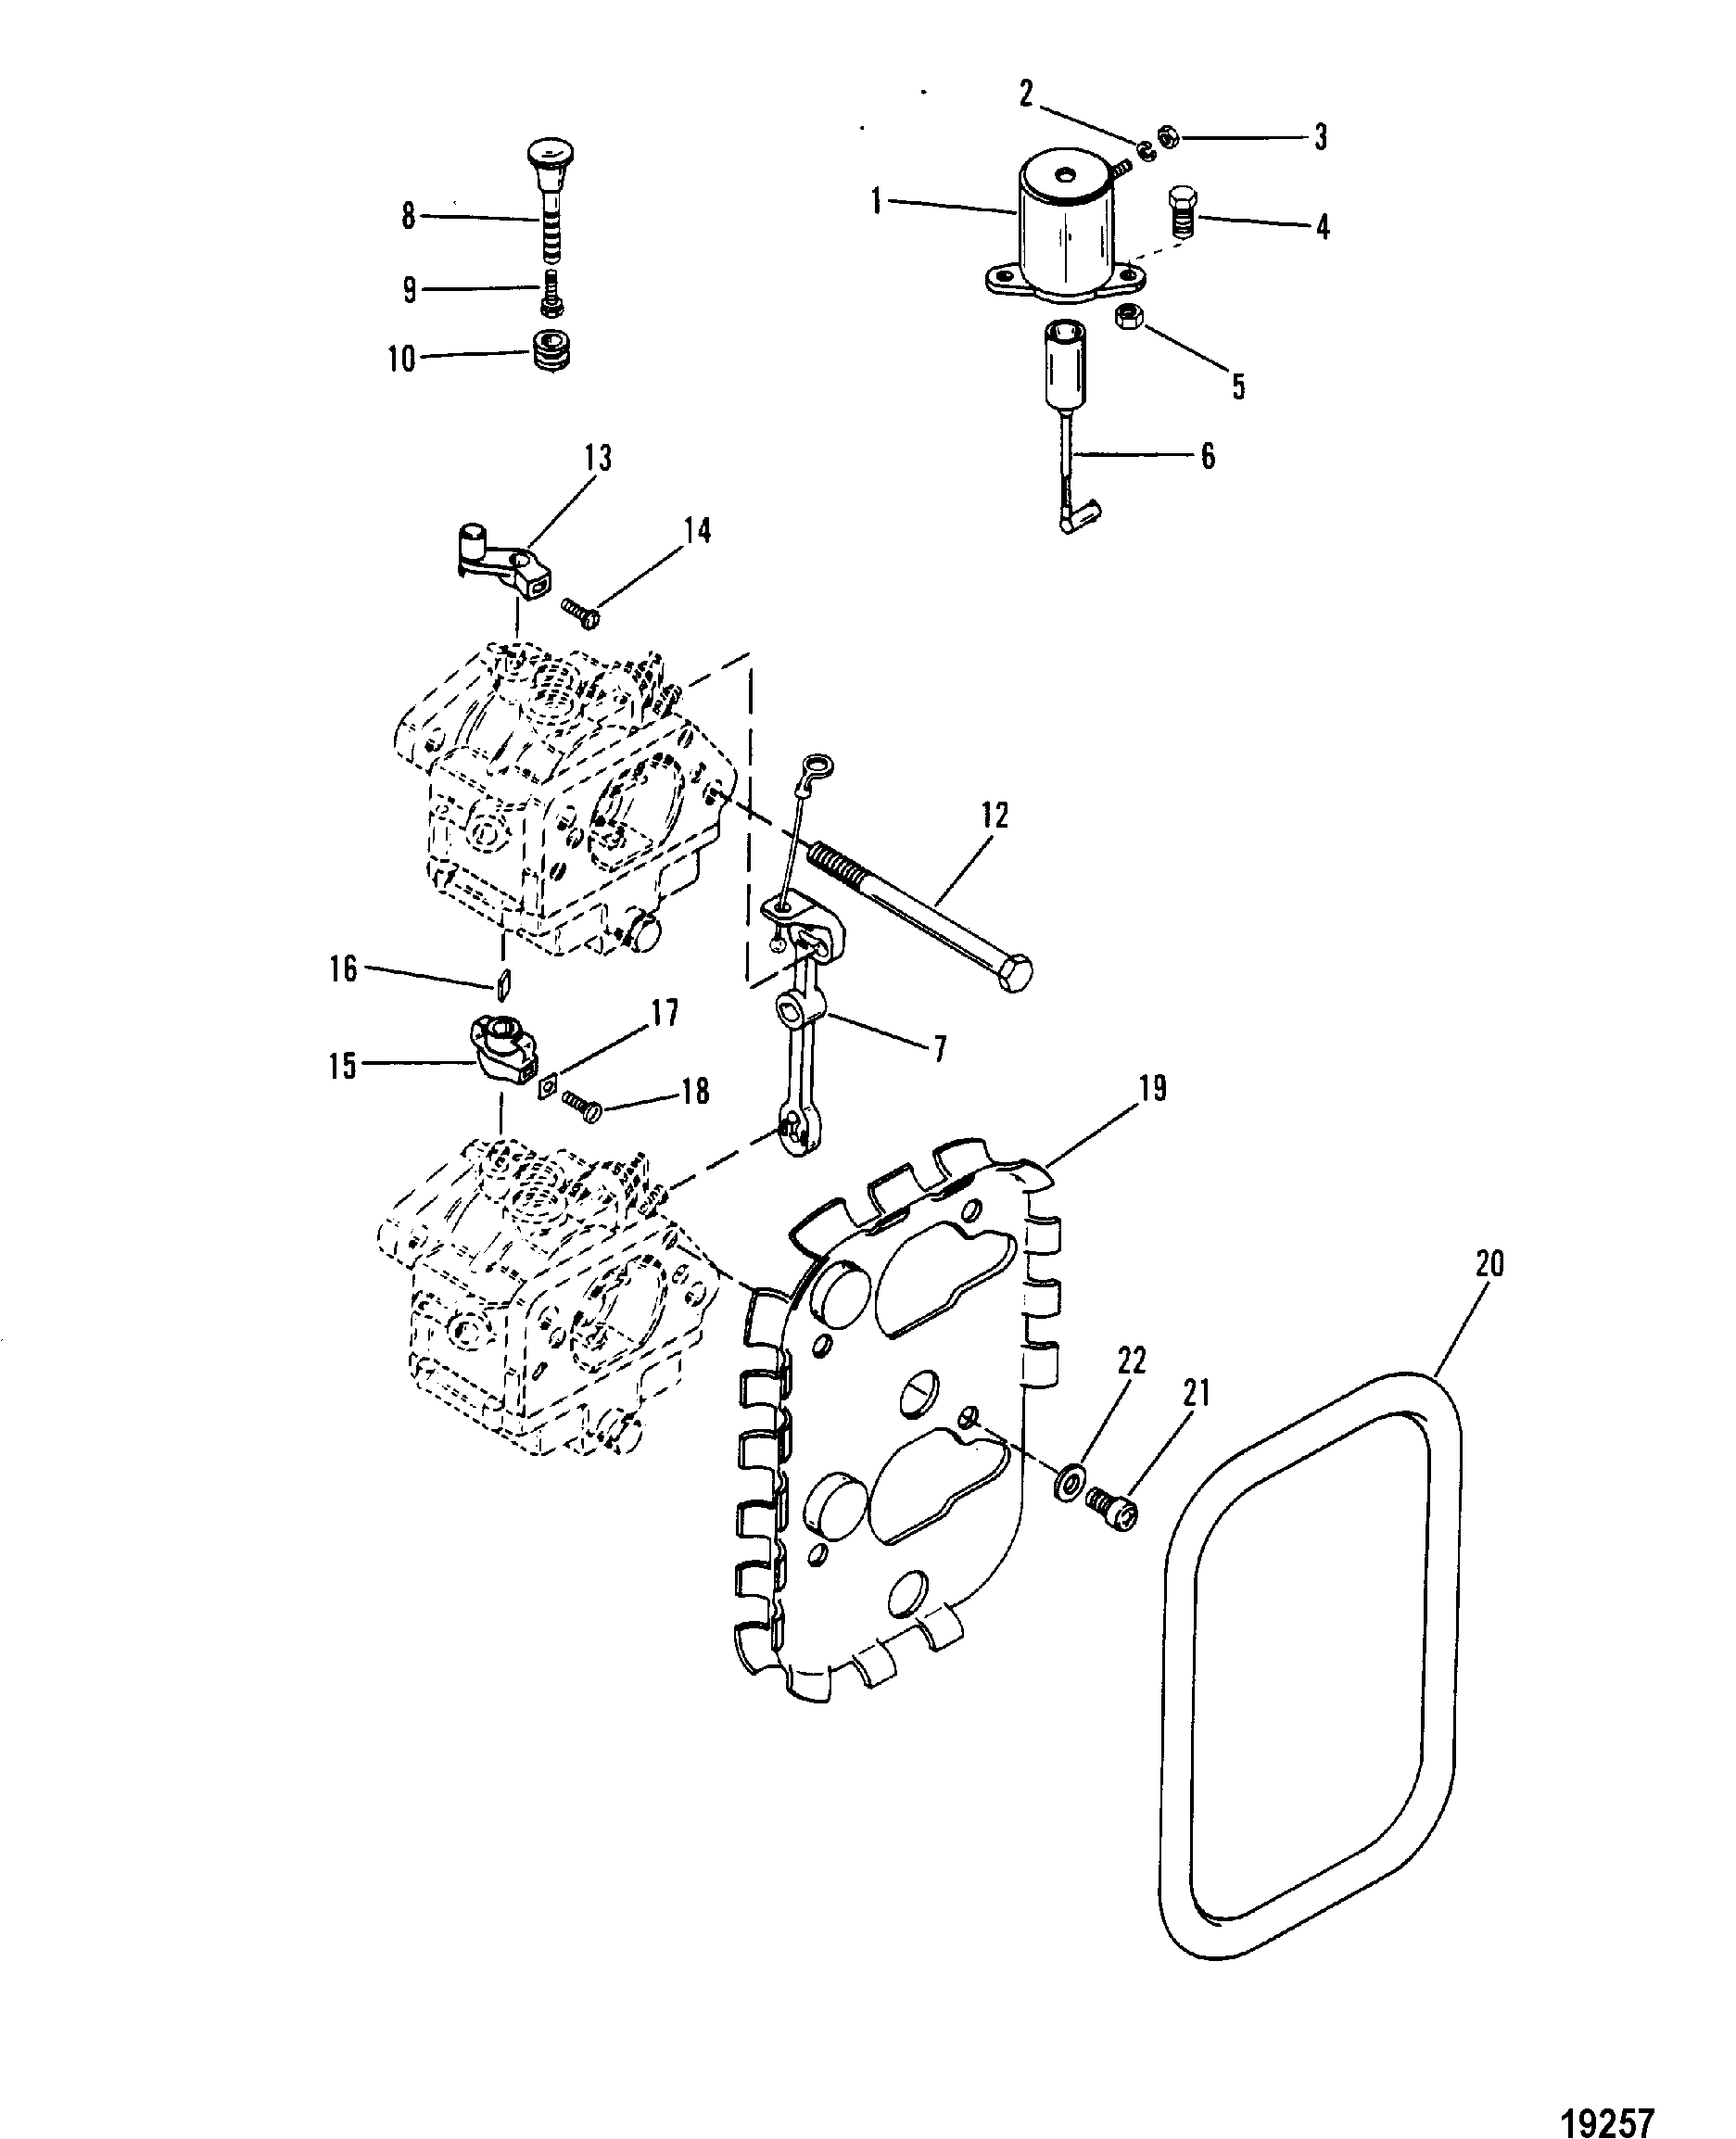 Carburetor Linkage And Choke Solenoid For Mariner